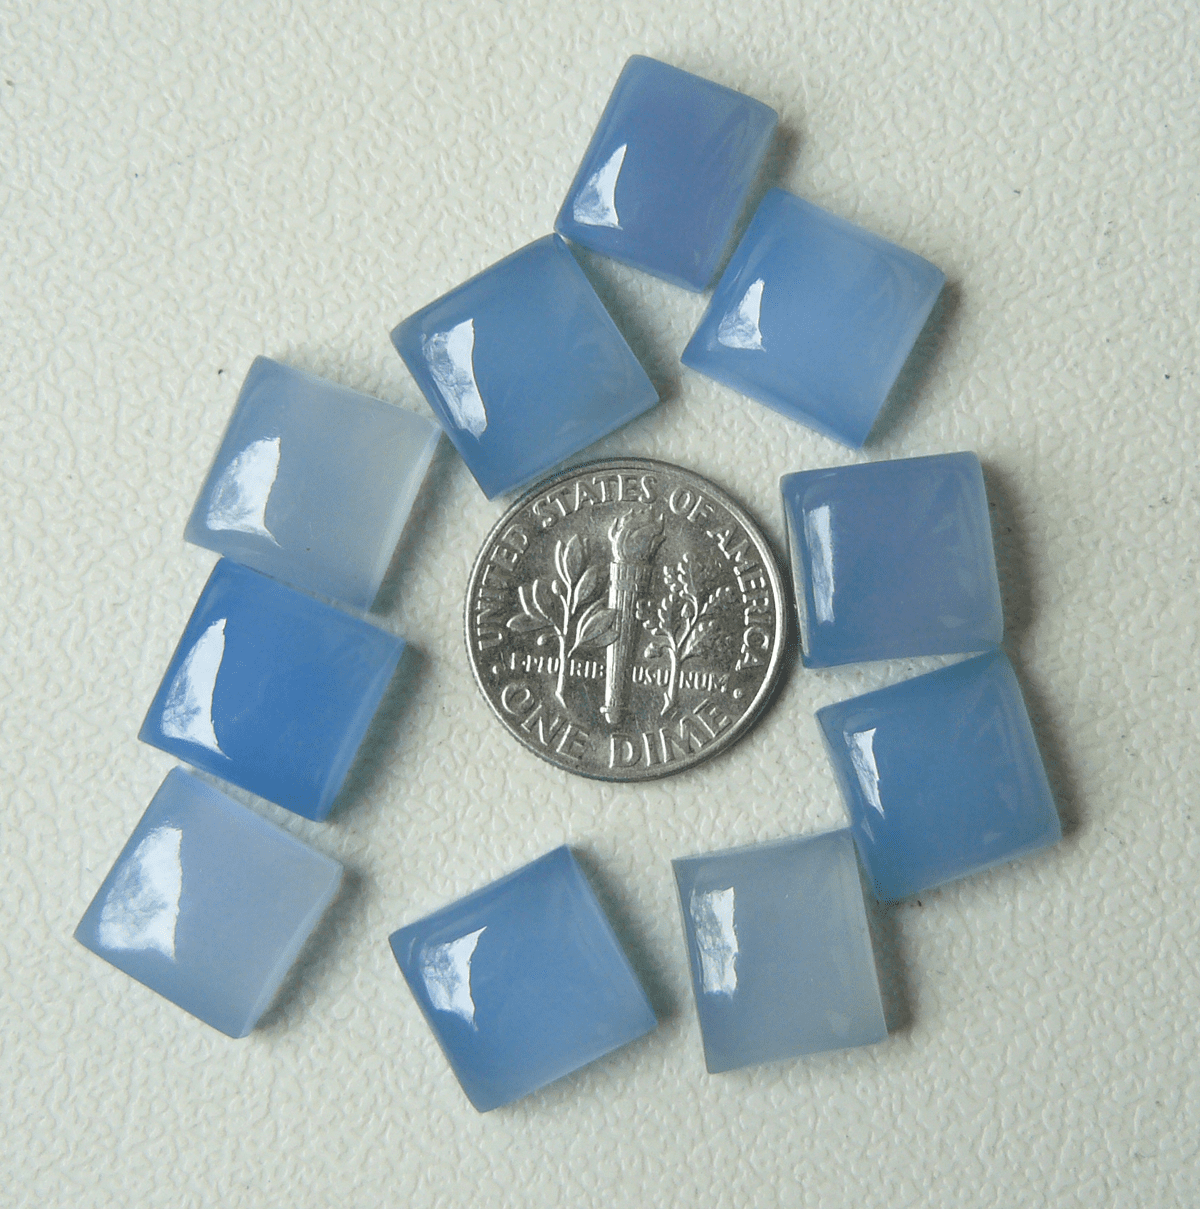 11MM Square Cabochons Blue Chalcedony